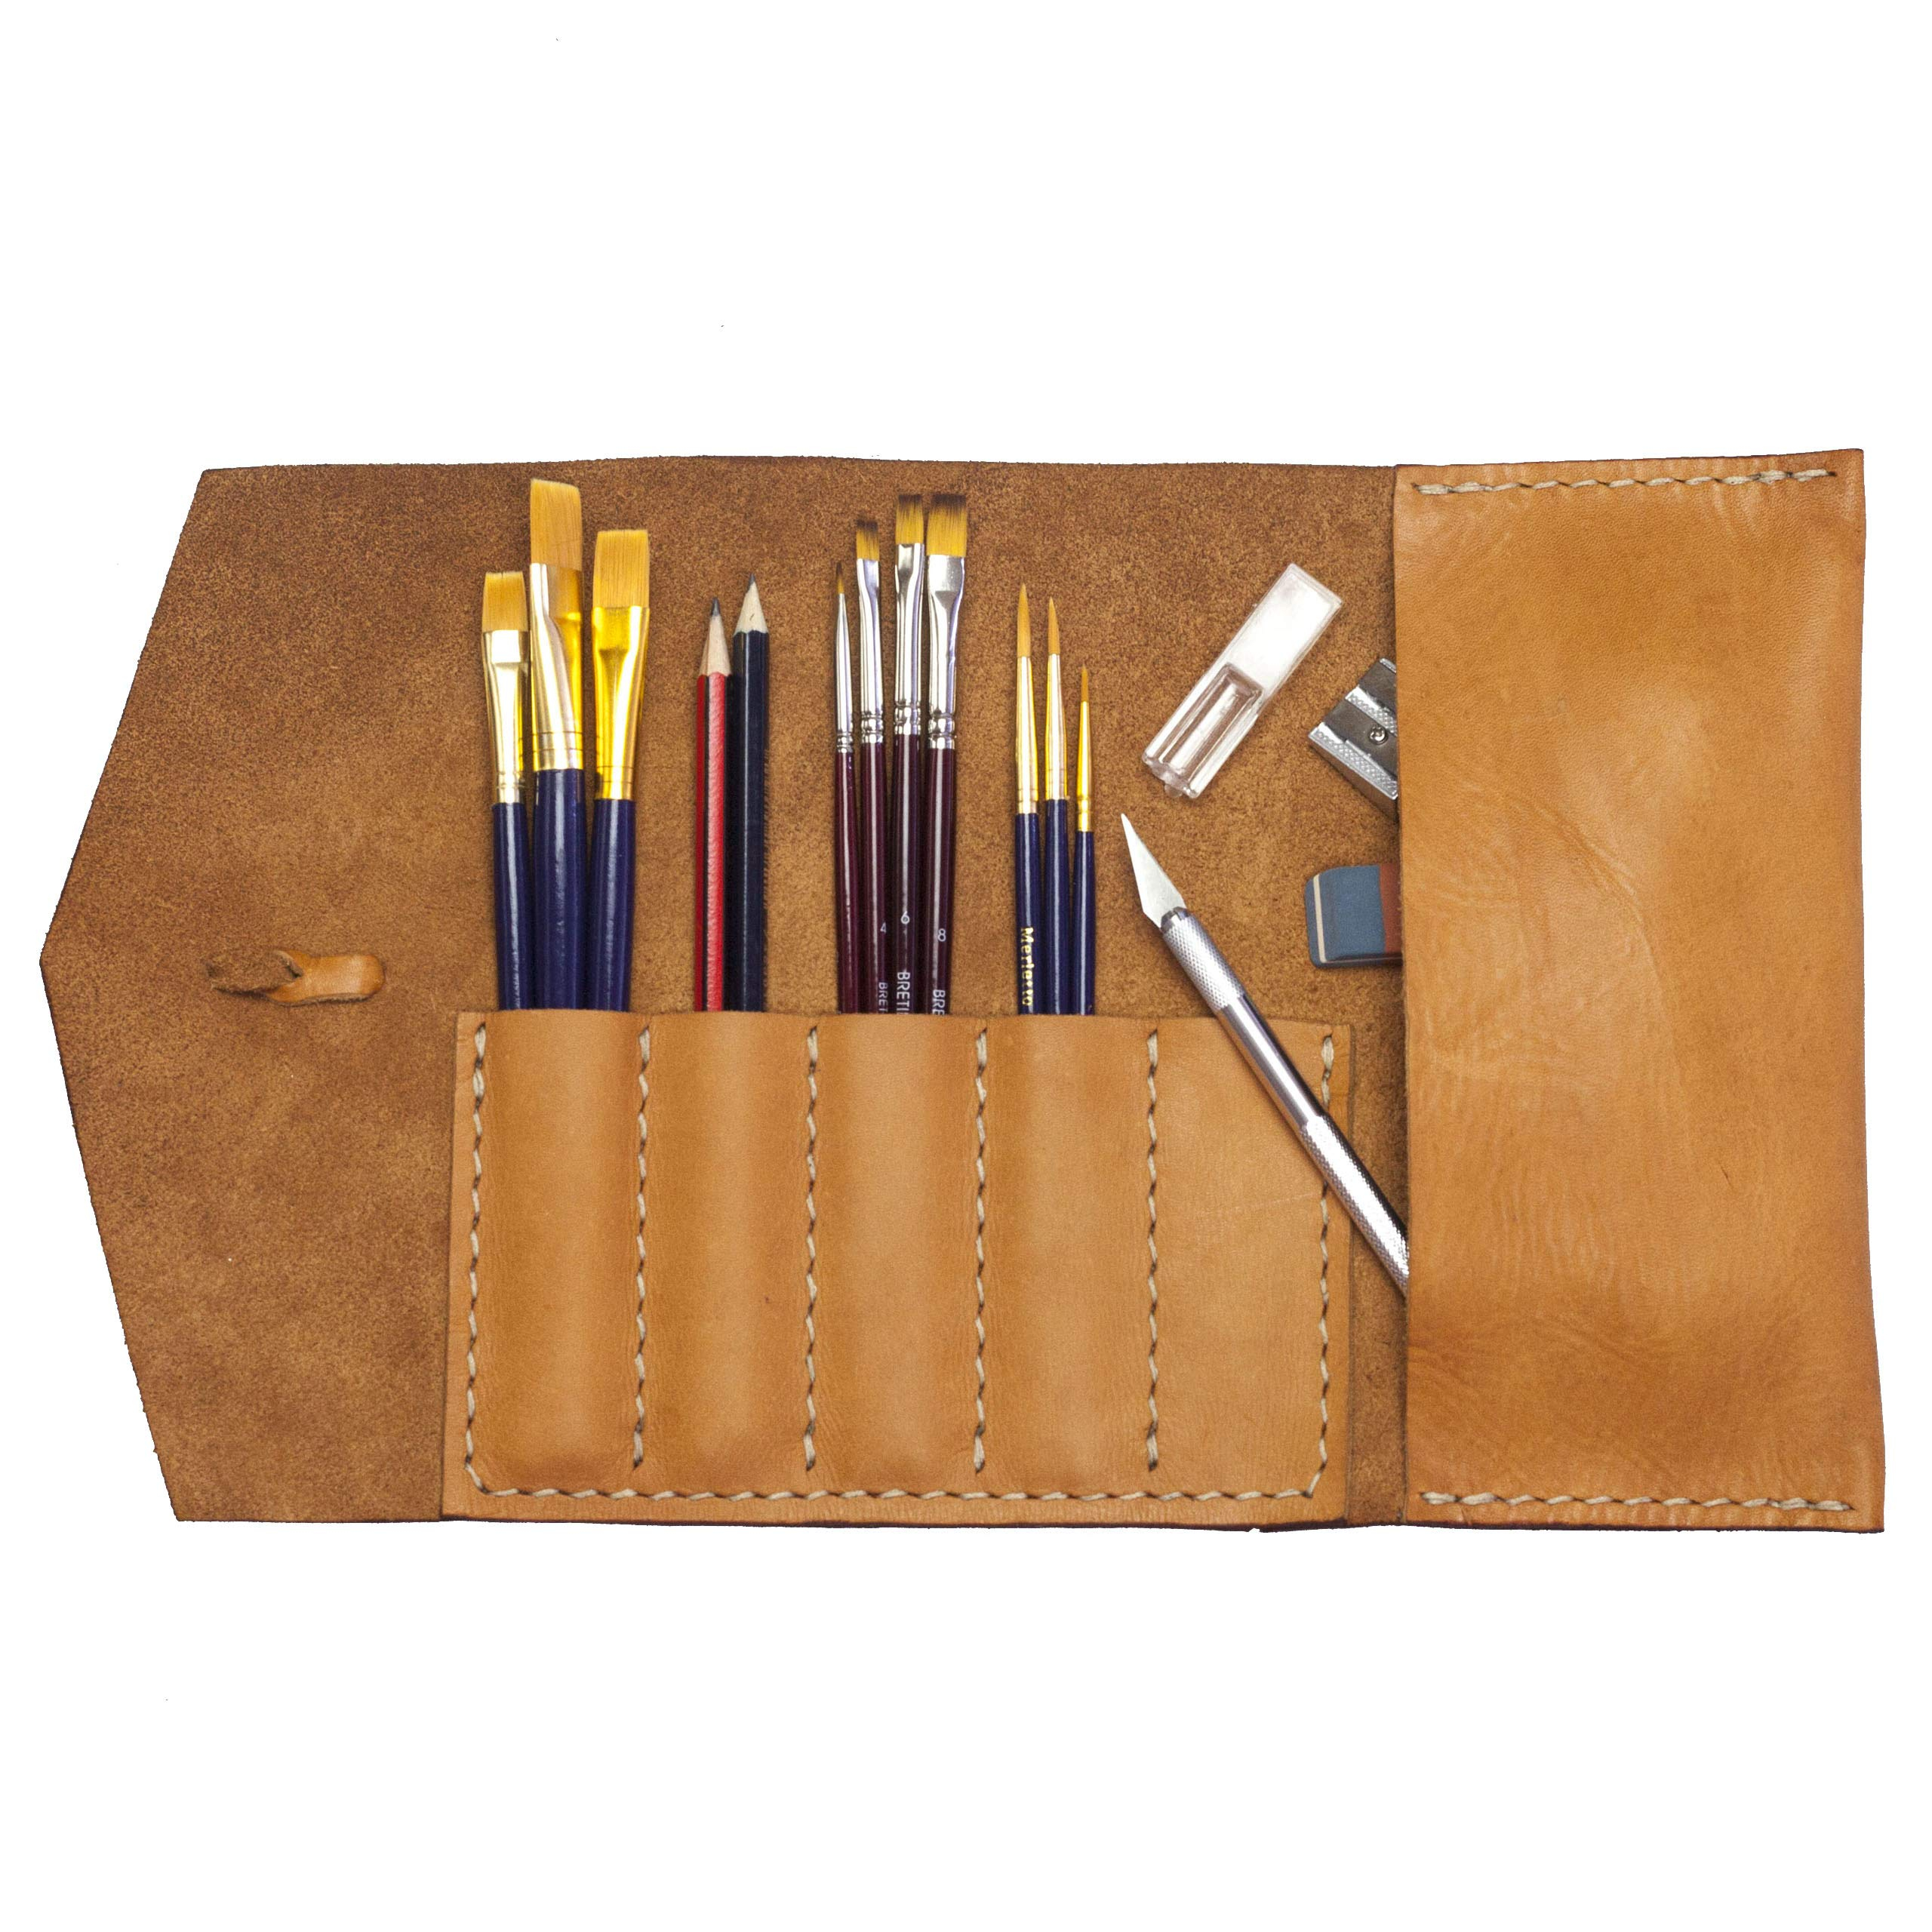 Alta Andina Leather Pen & Pencil Case | Soft Leather Roll Up for Pens, Brushes, Supplies (Brown – Miel)